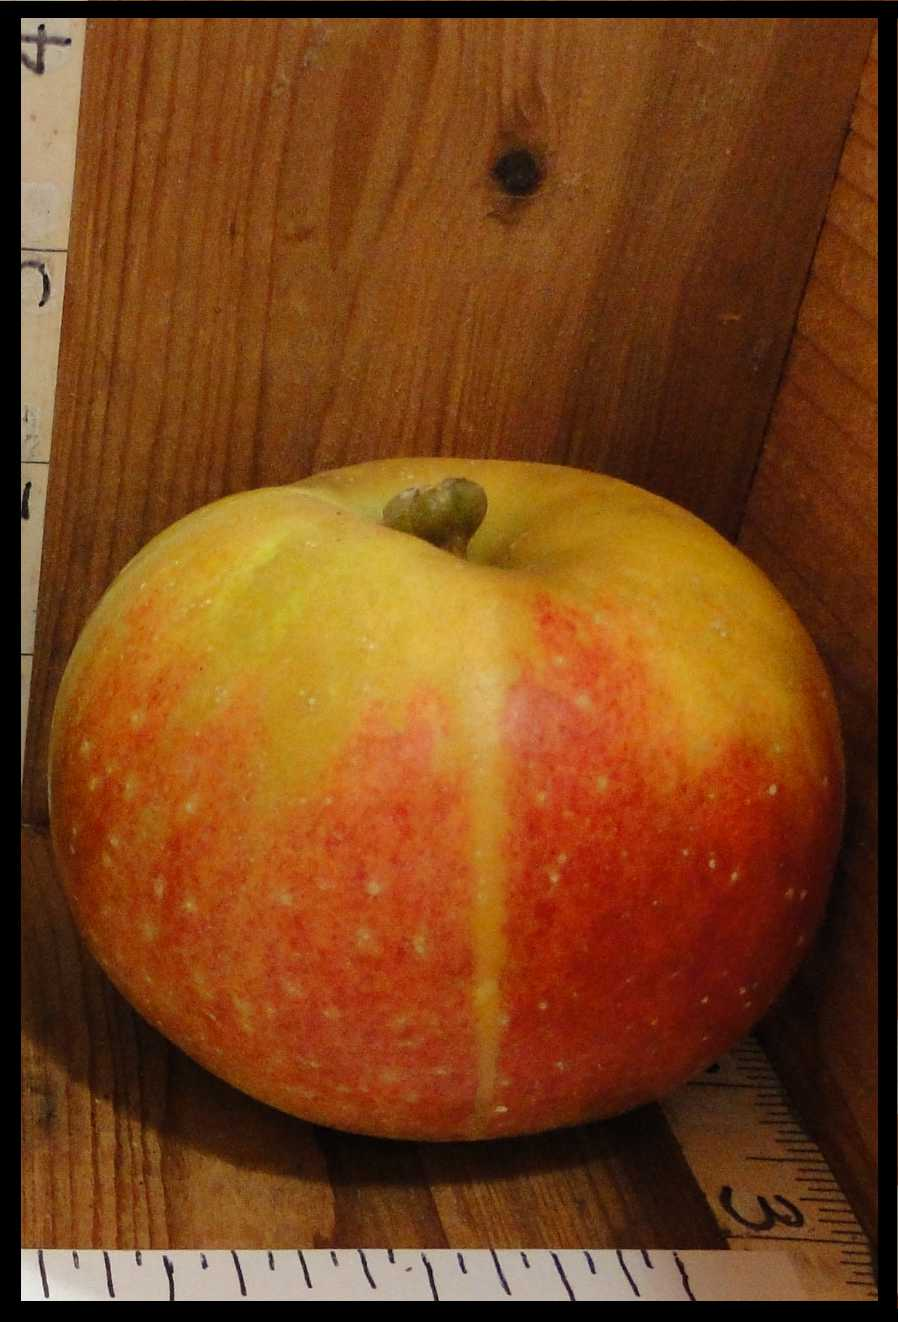 yellowish brown apple with red blush